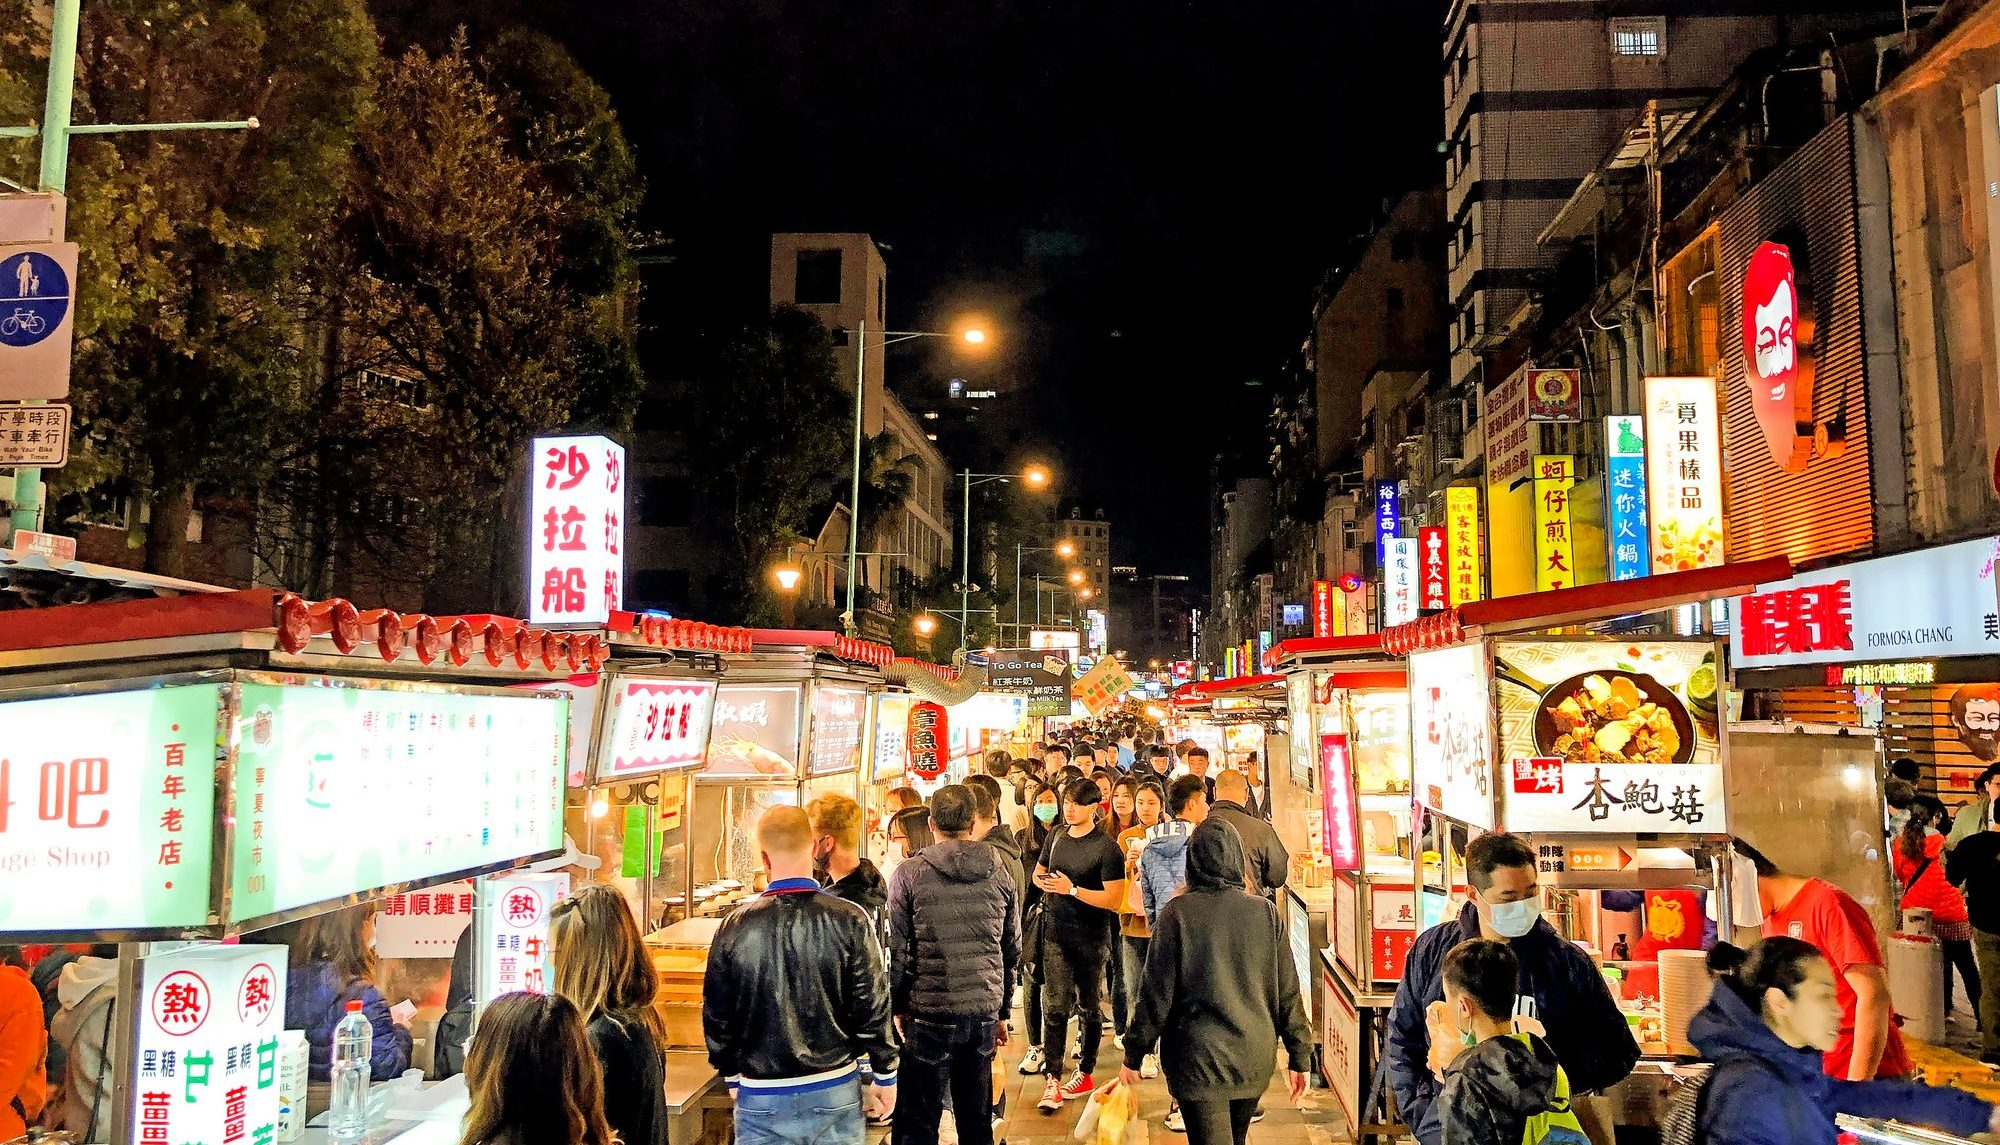 Ningxia Night Market Taipei – Top 10 Must Eat Street Food